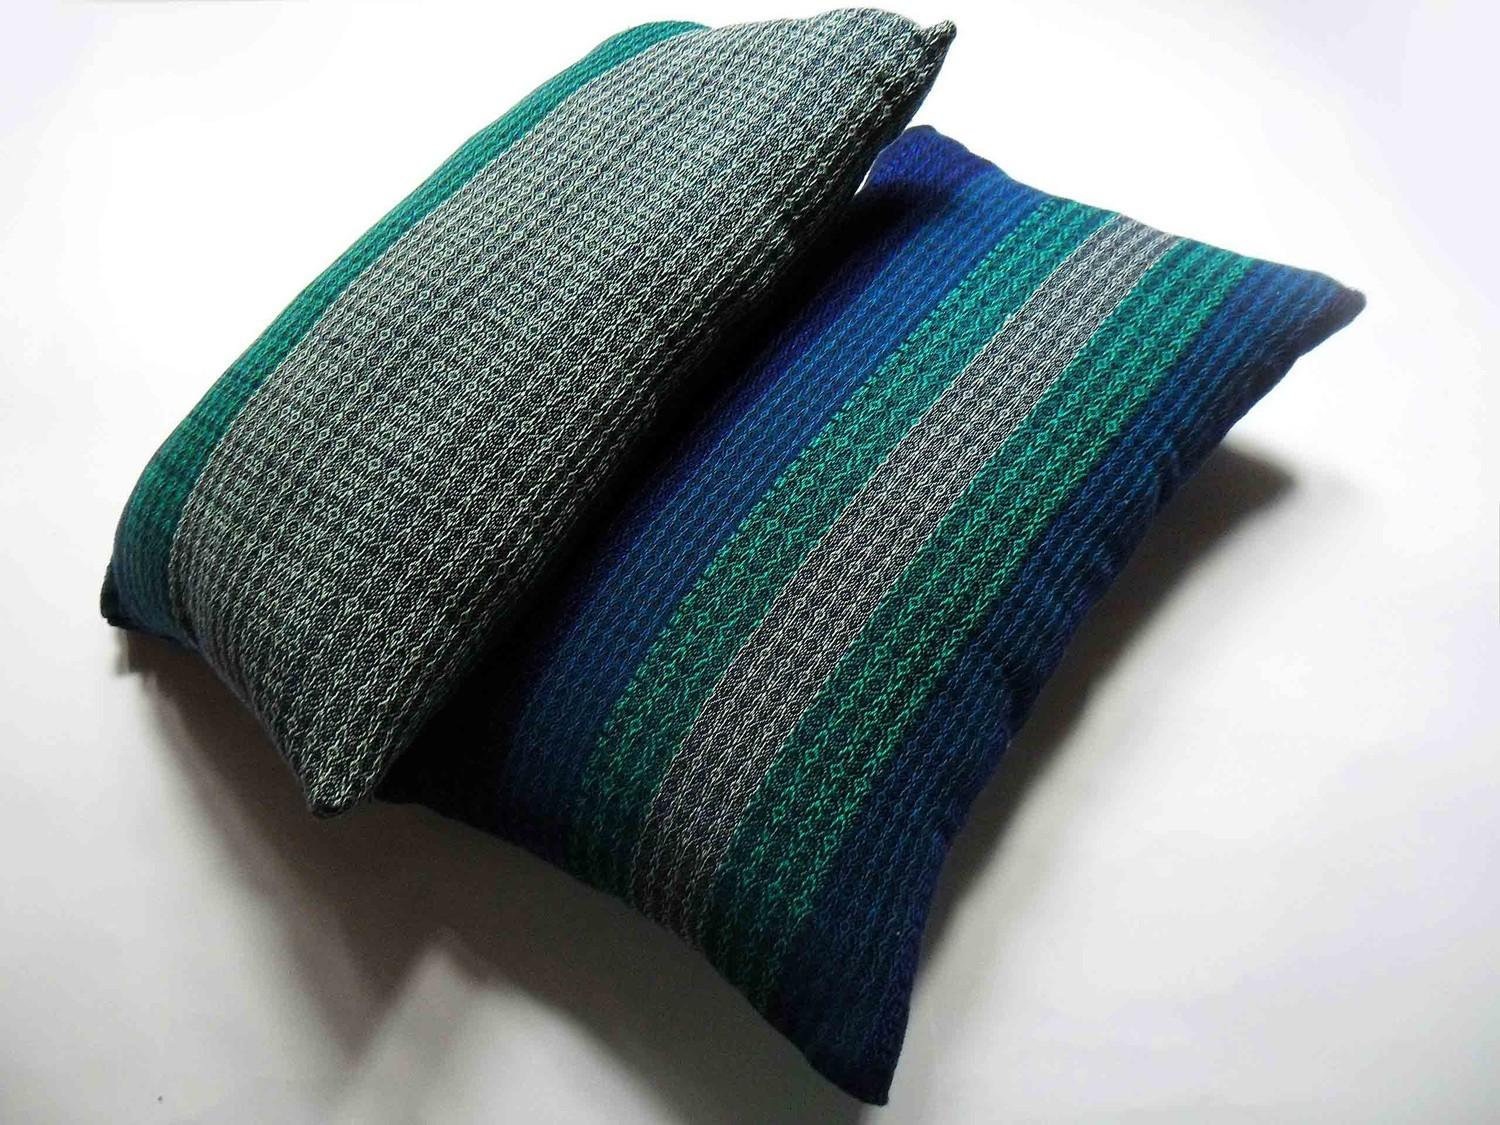 woven pillows inspirated by ACRIDA - 1 by Krutilla Eszter